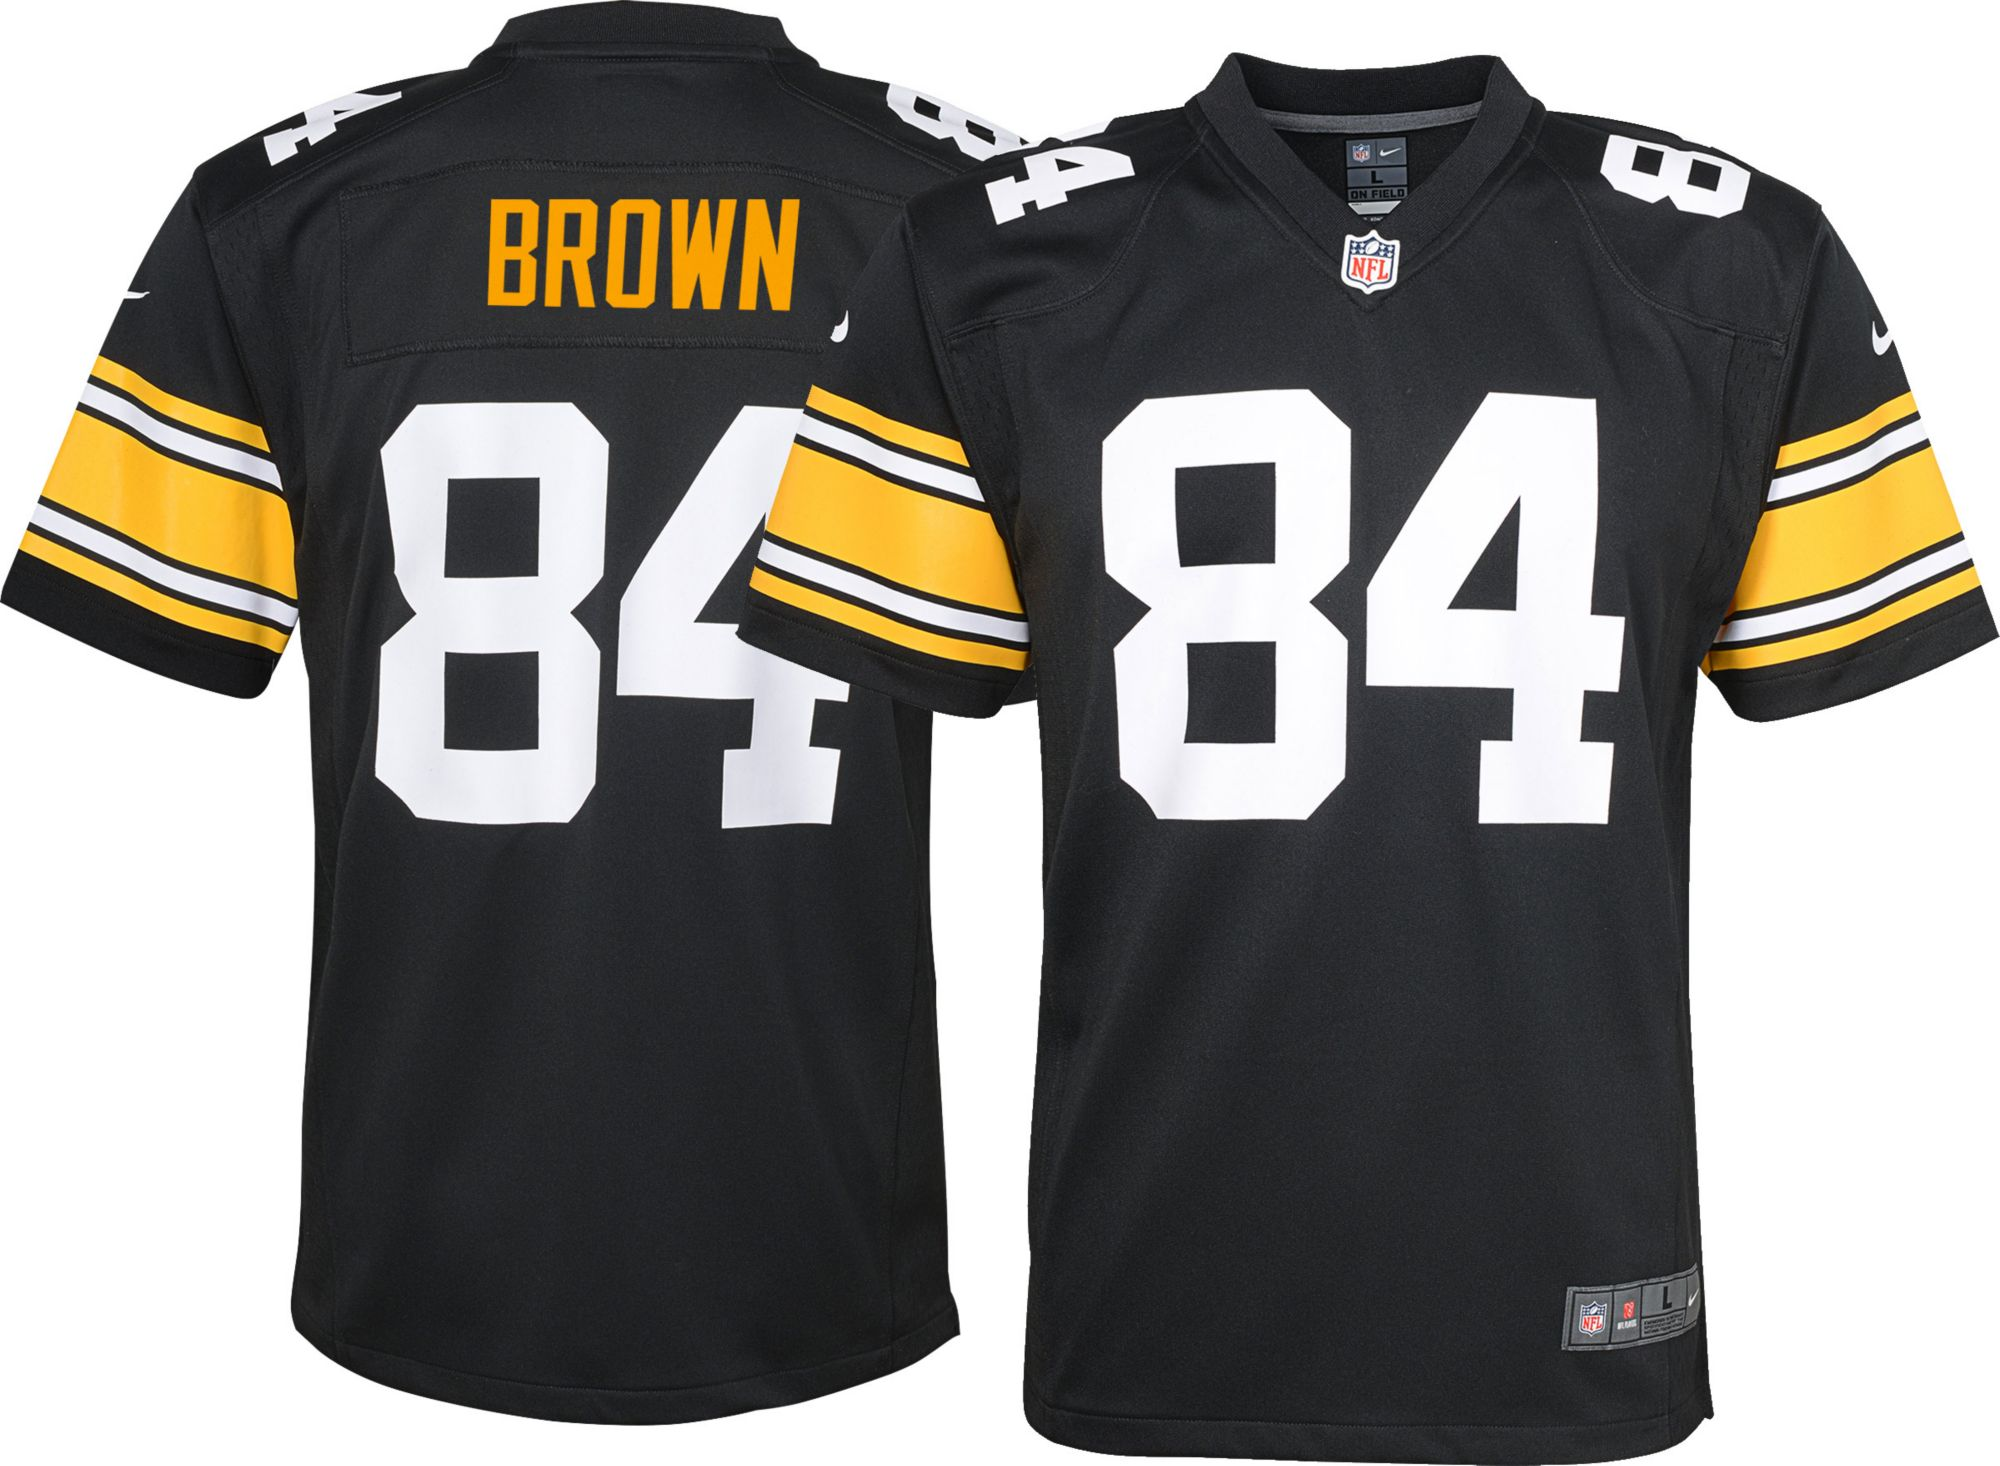 Nike Youth Alternate Game Jersey Pittsburgh Steelers Antonio Brown  84 -  Walmart.com 80b3cc241